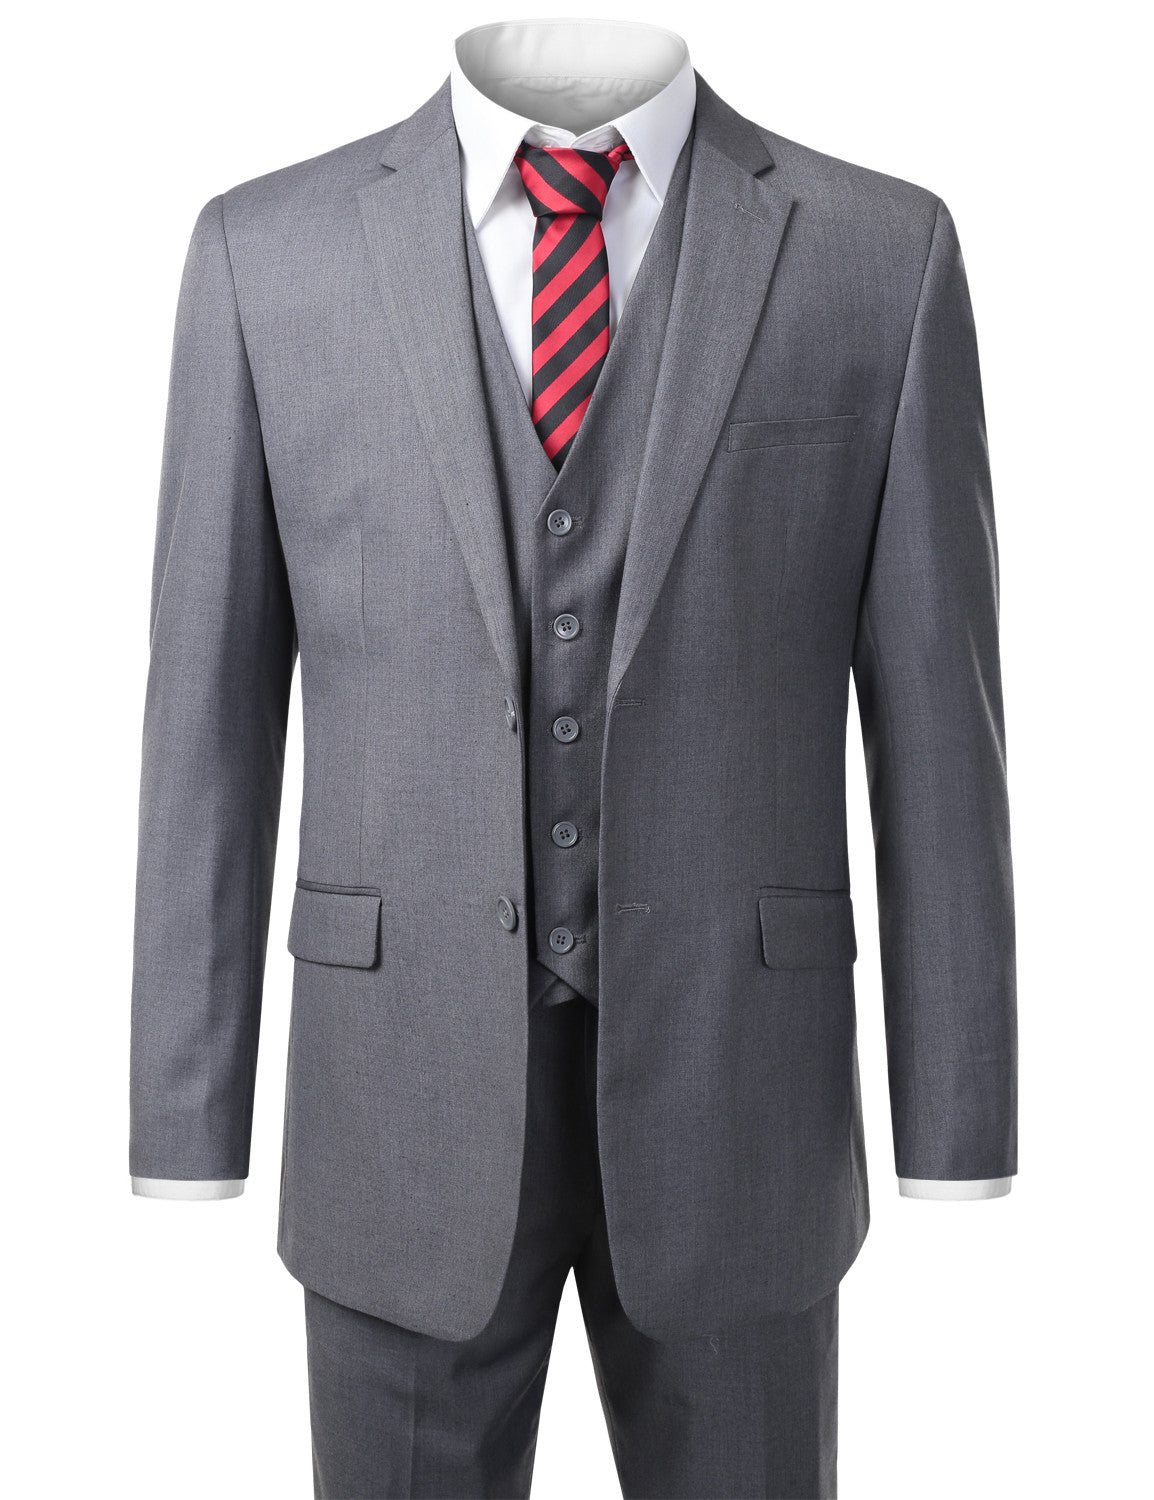 GRAY Modern Fit 3 Piece Suit- MONDAYSUIT